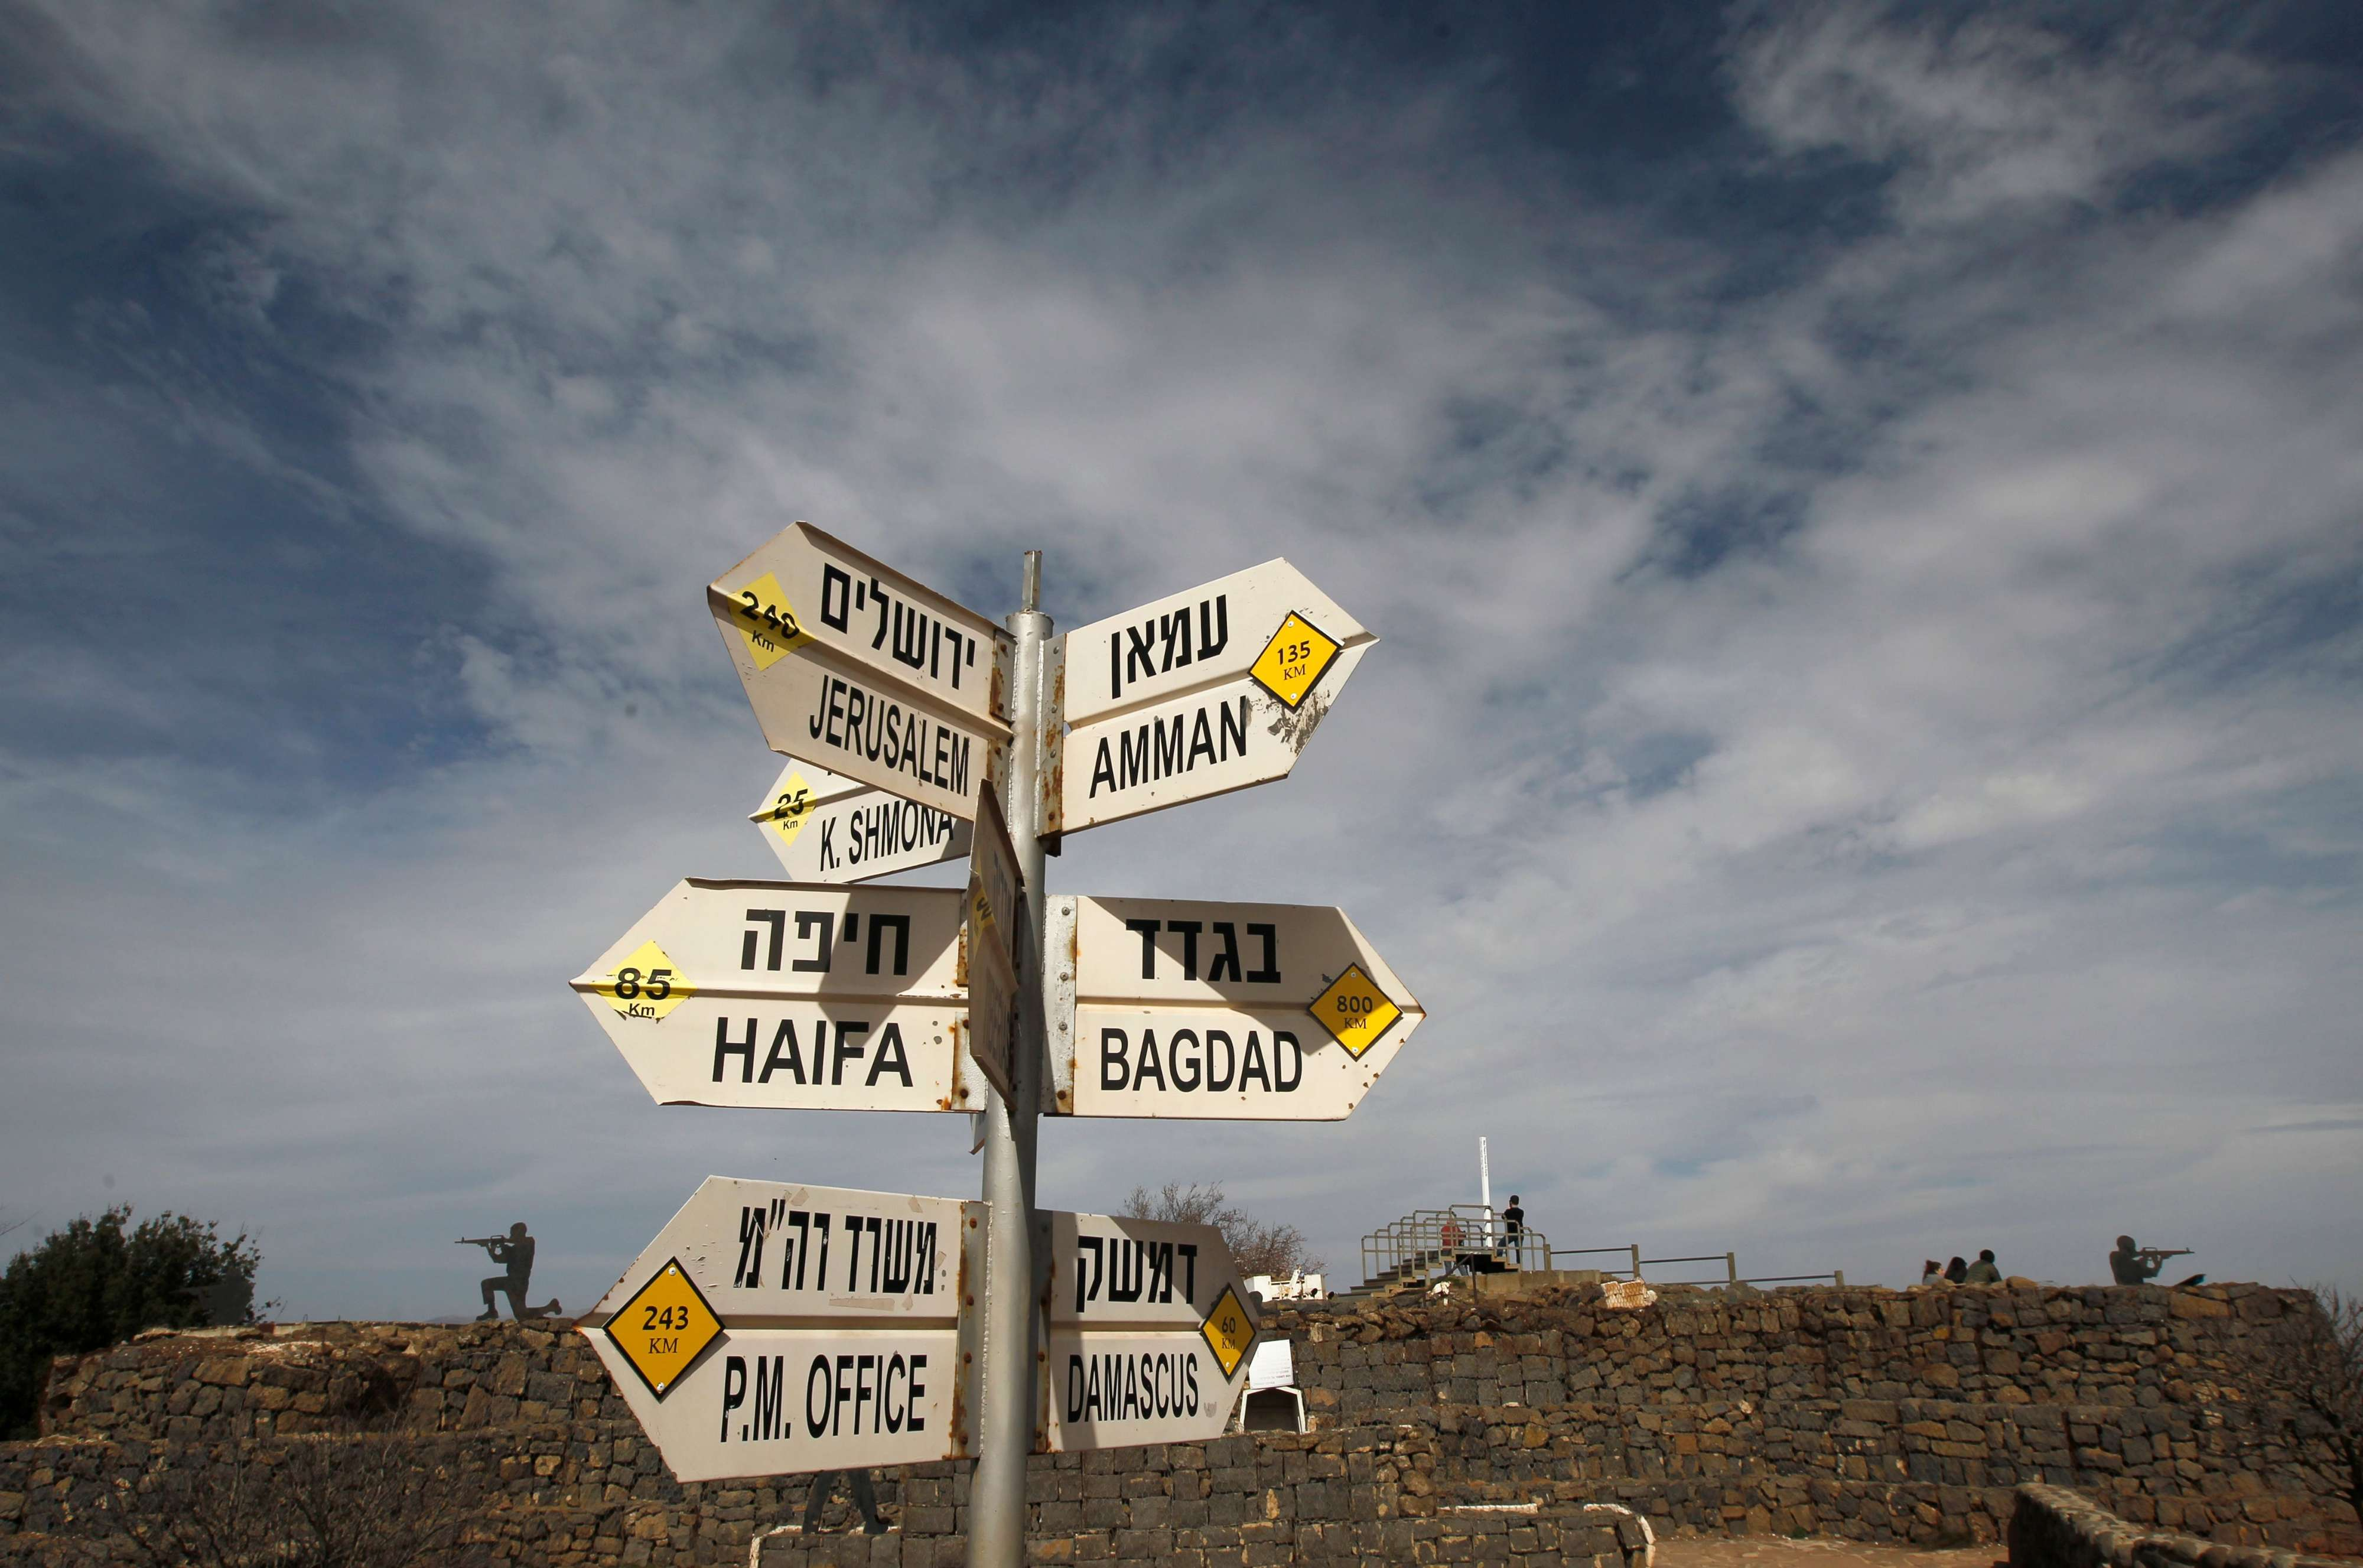 A sign shows the direction to Damascus and Baghdad among other destinations at an army post on Mount Bental in the Israeli-annexed Golan Heights, on February 10. (AFP)